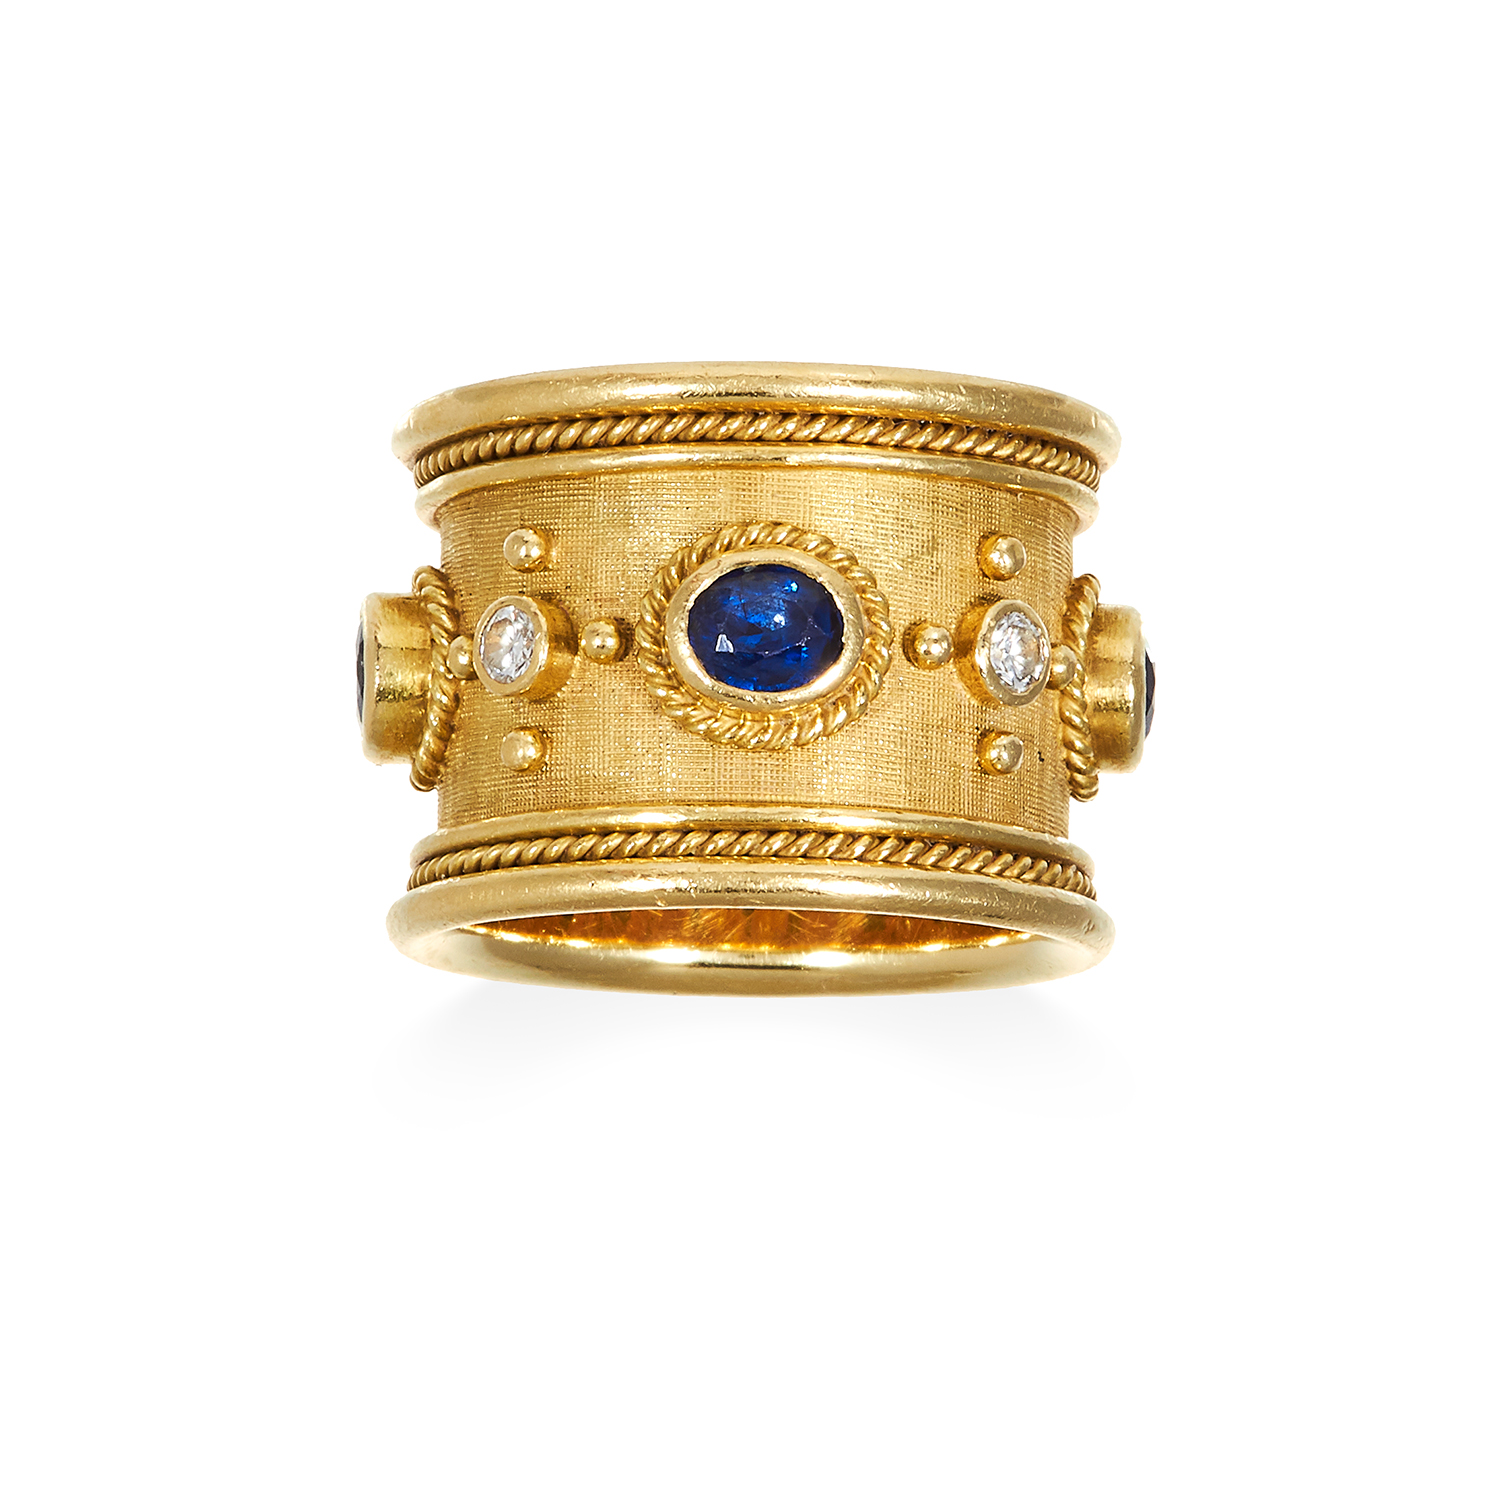 A SAPPHIRE AND DIAMOND RING, ELIZABETH GAGE, CIRCA 1993 in 18ct yellow gold, the wide textured